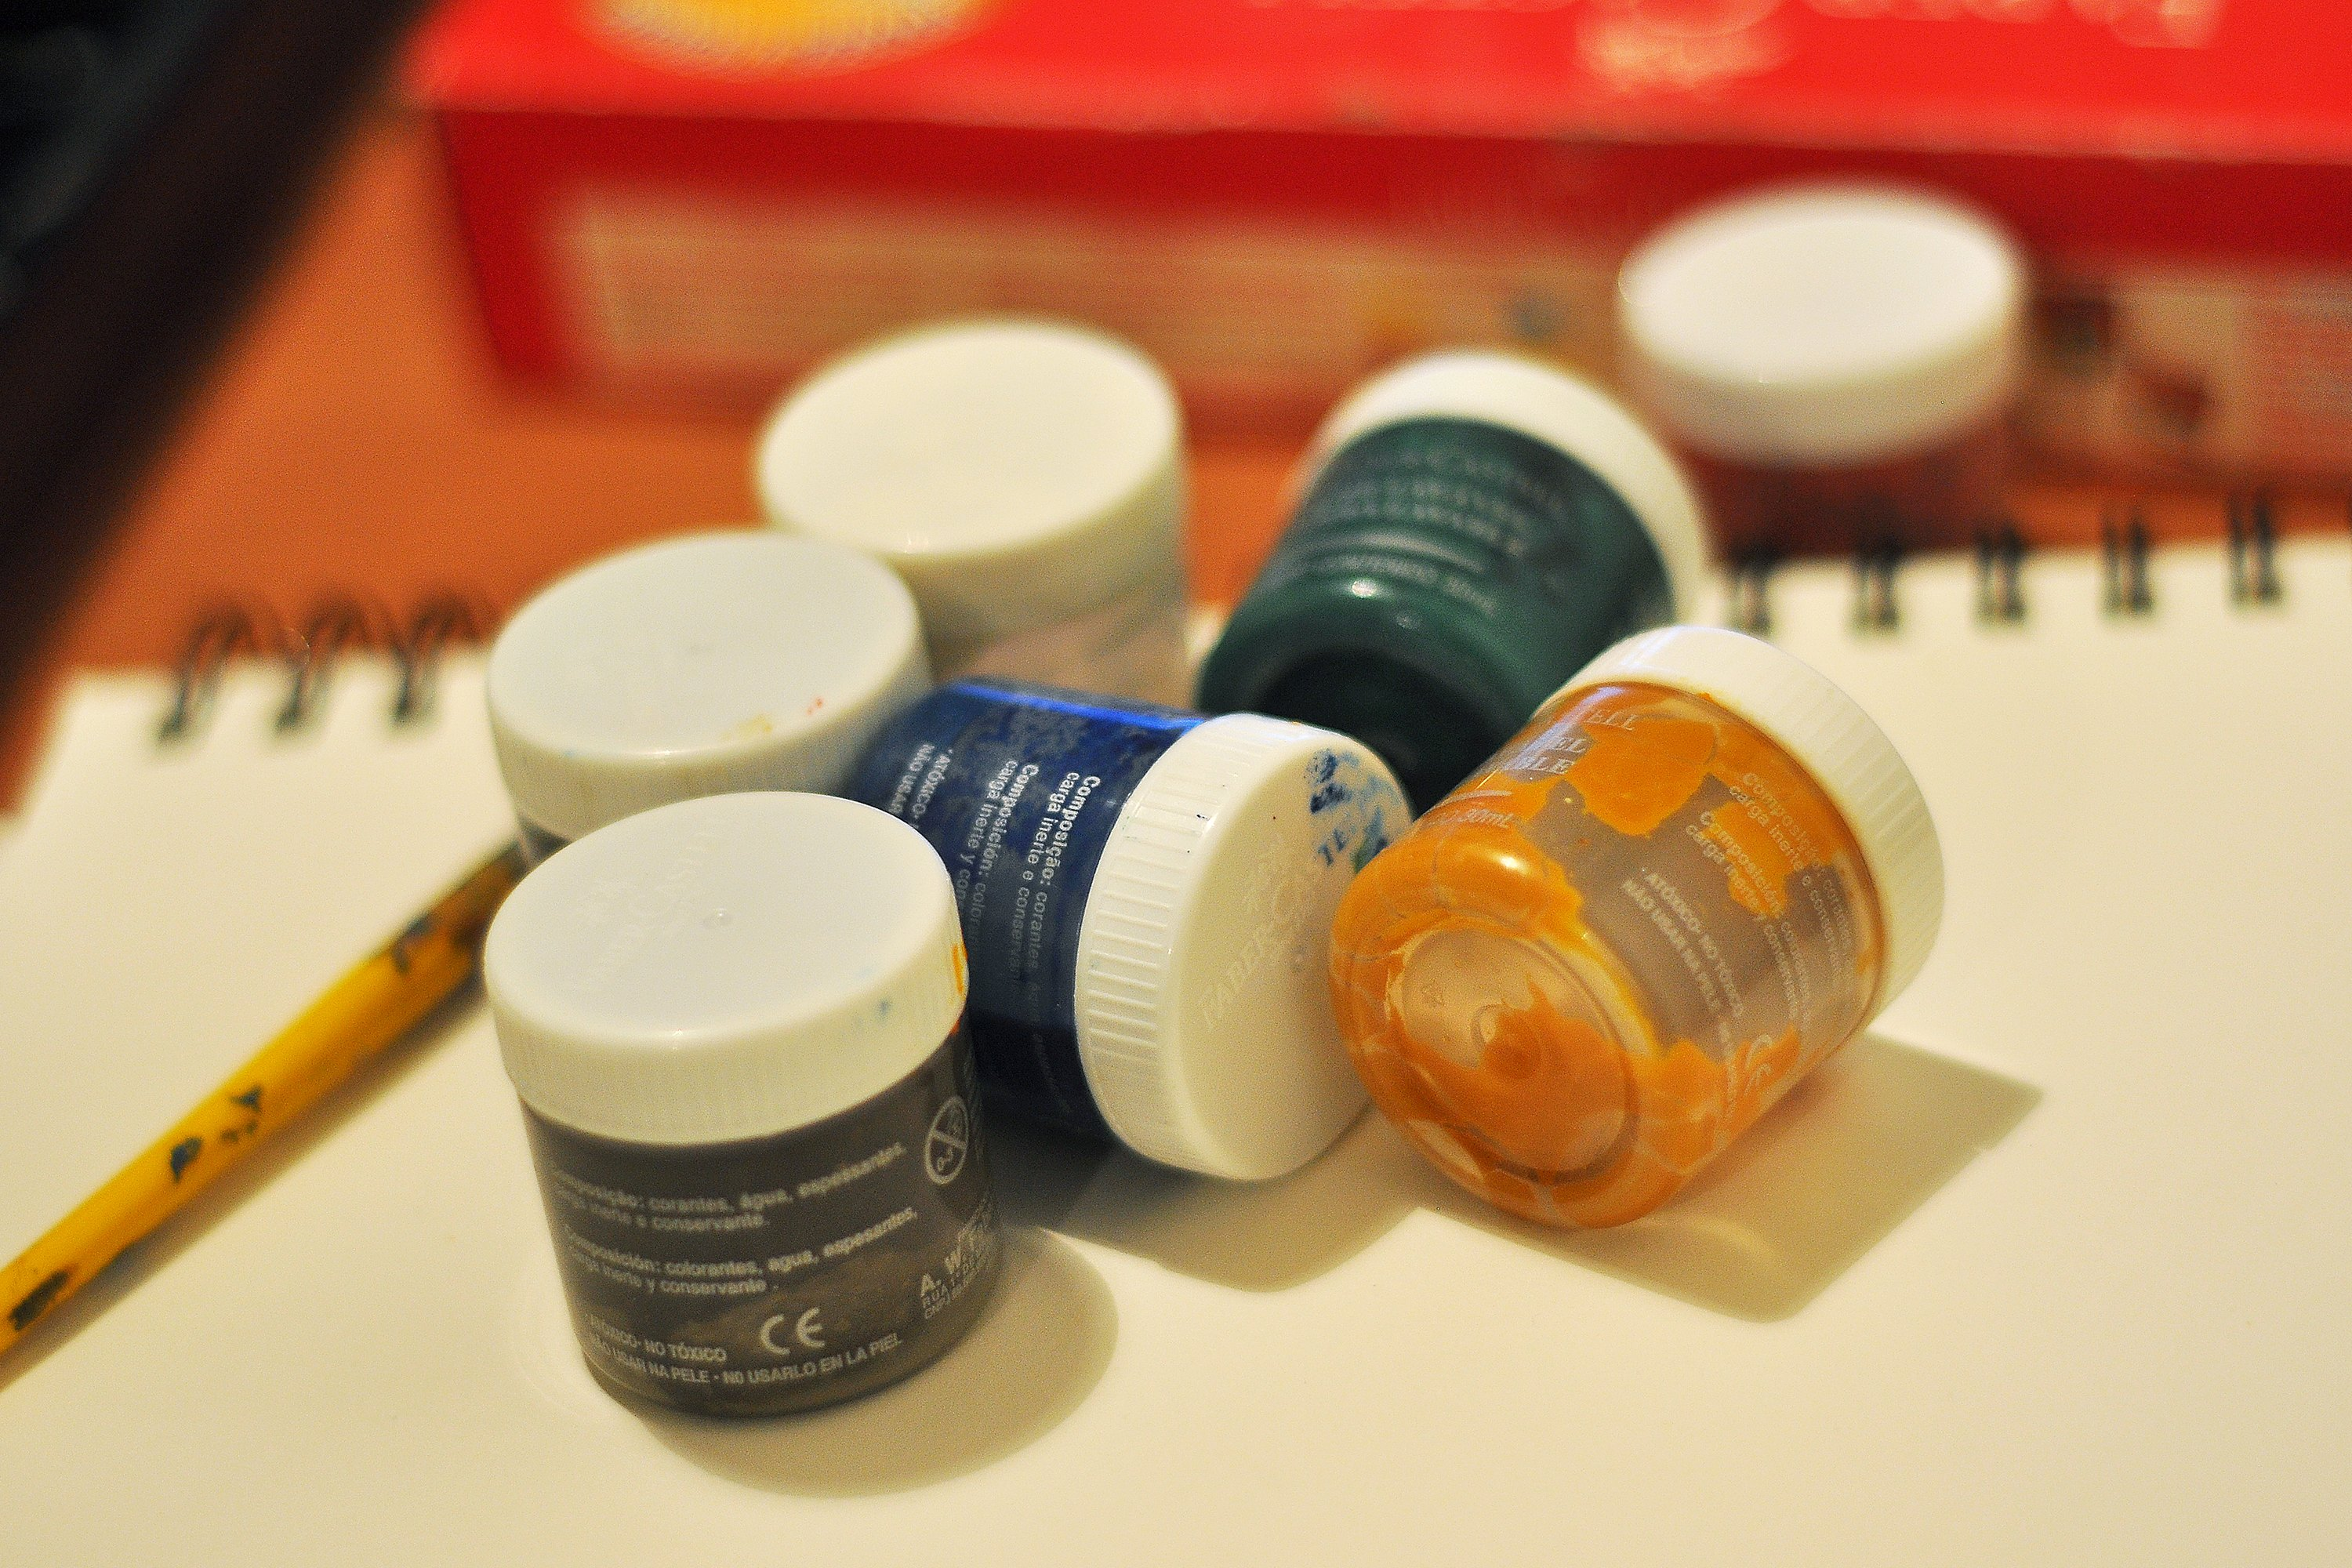 Can Tempera Paint Be Used On Fabric